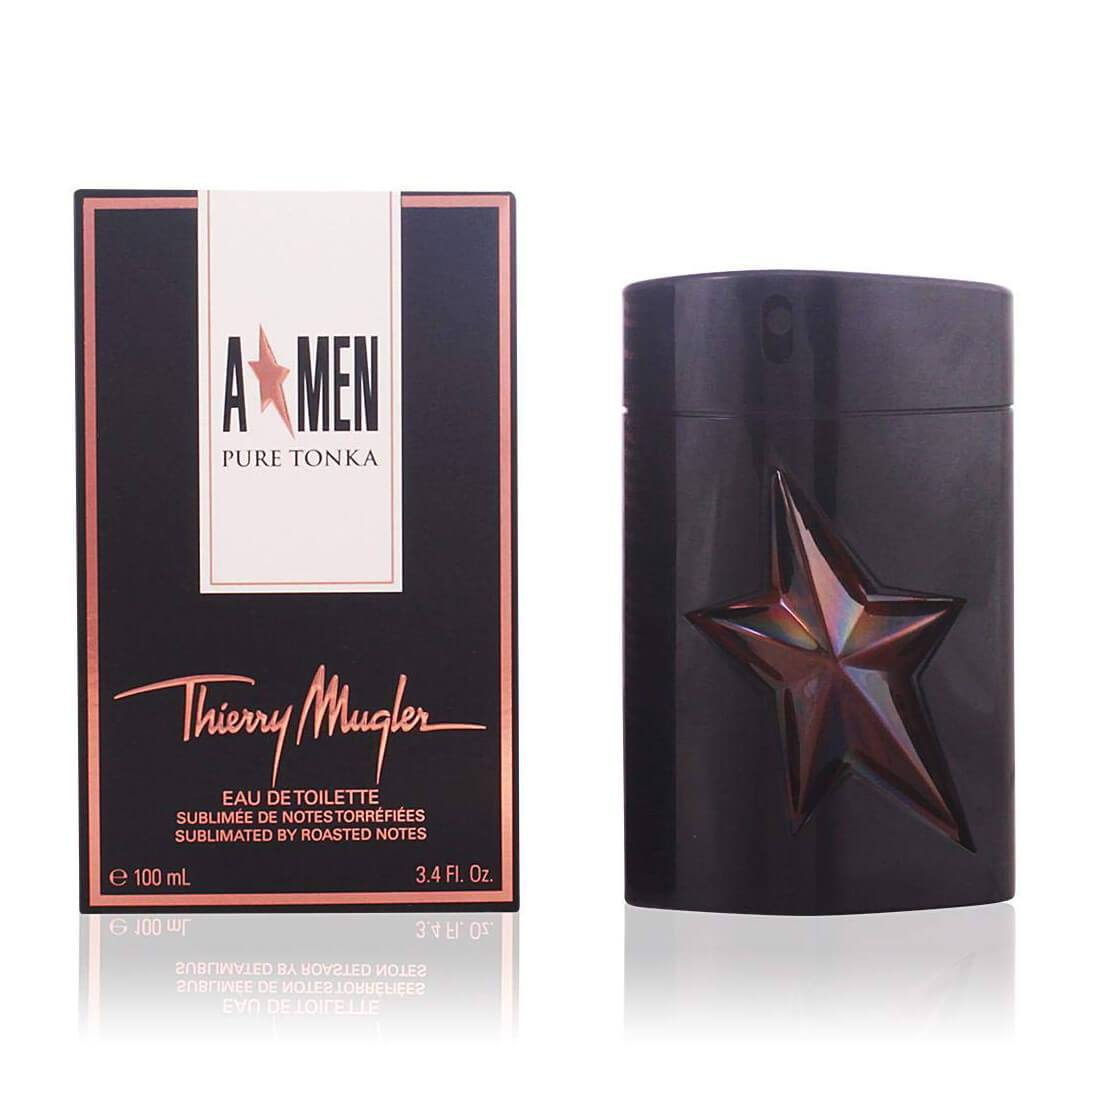 Thierry Mugler A*Men Pure Tonka Eau De Toilette - 100ml